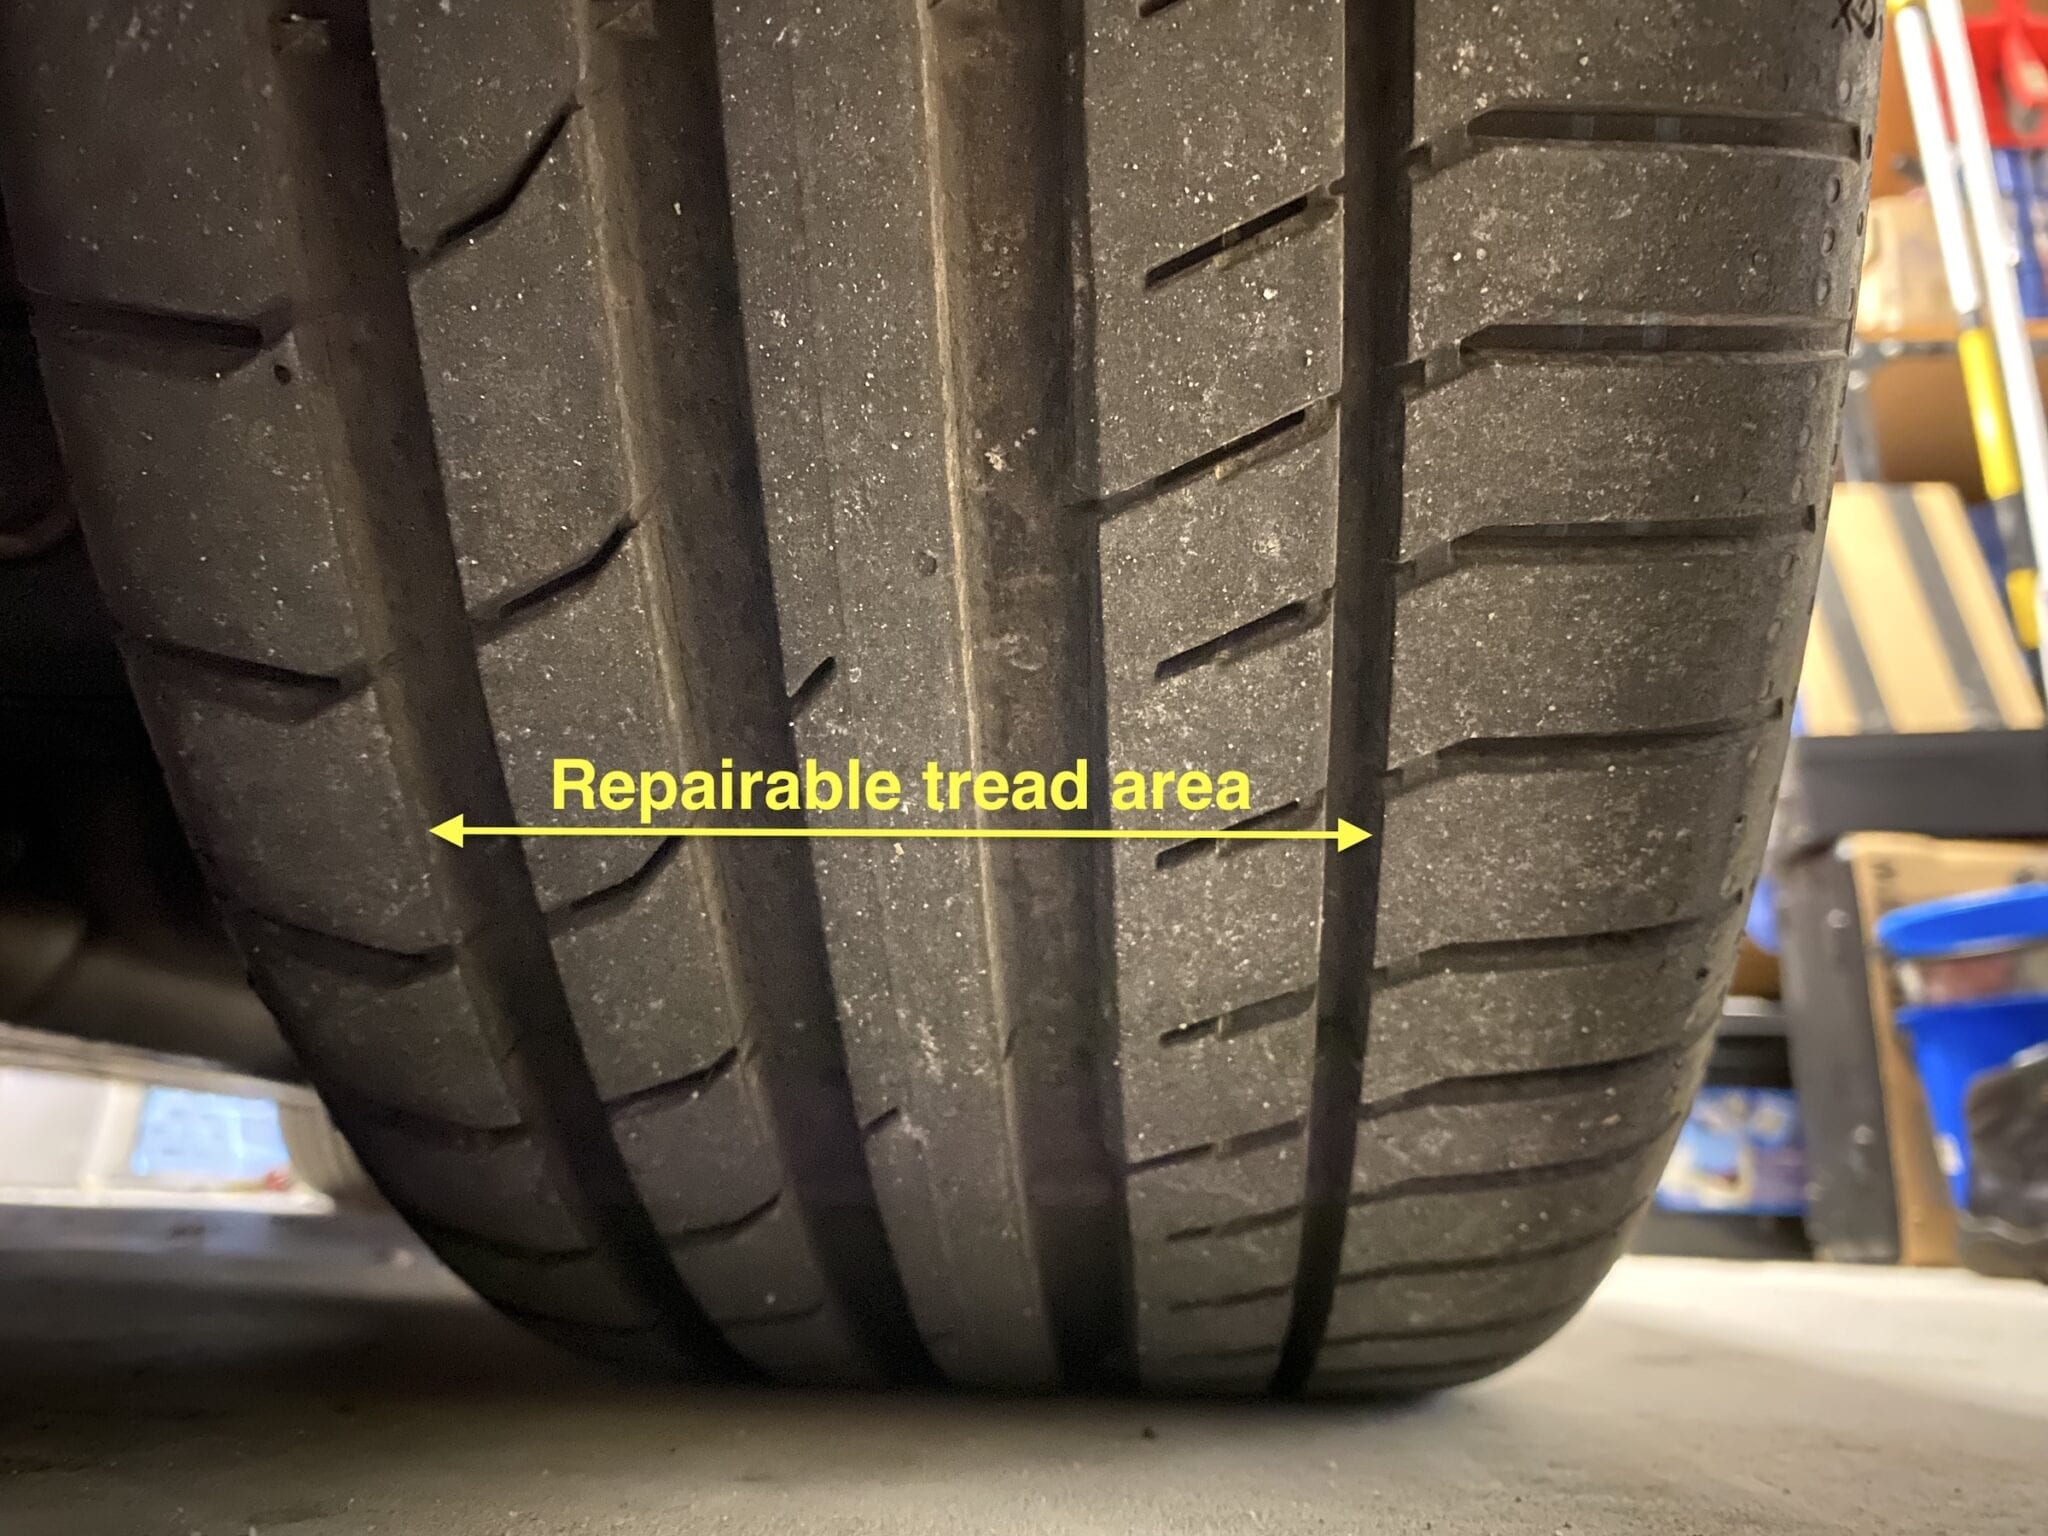 Are Tyre Plugs Legal? Clearing Up The Confusion Around Tyre Plug Repair Kits